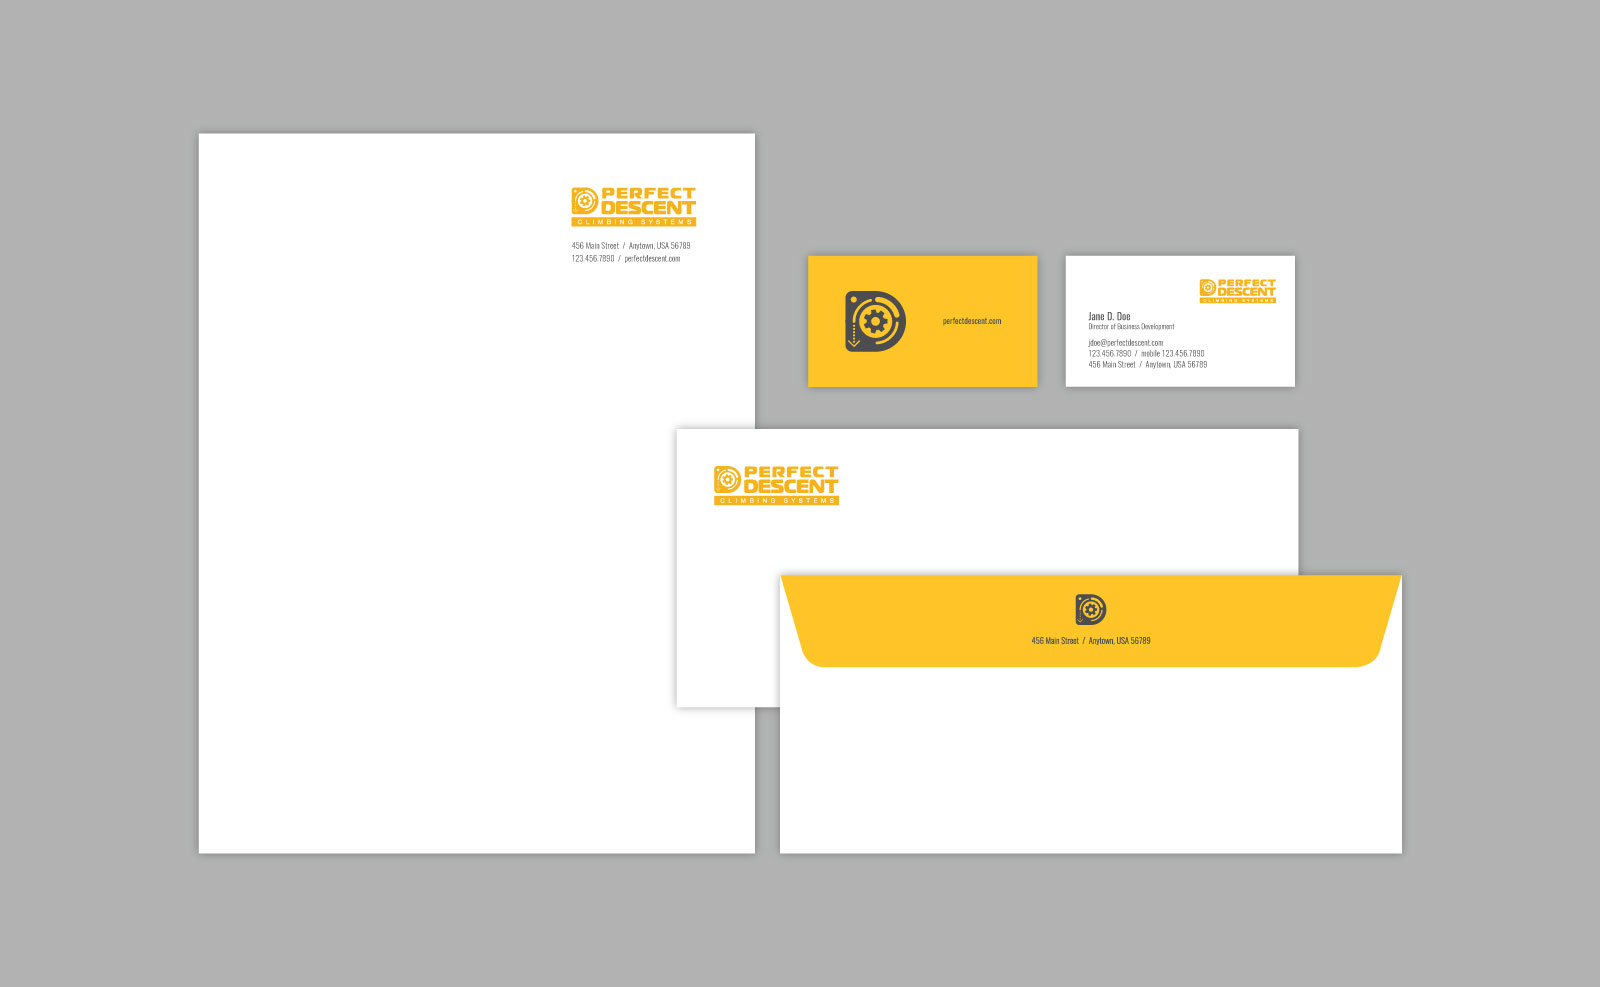 Stationery letterhead, business card, and envelope for Perfect Descent brand. Elements in white, yellow and black shown on a gray background